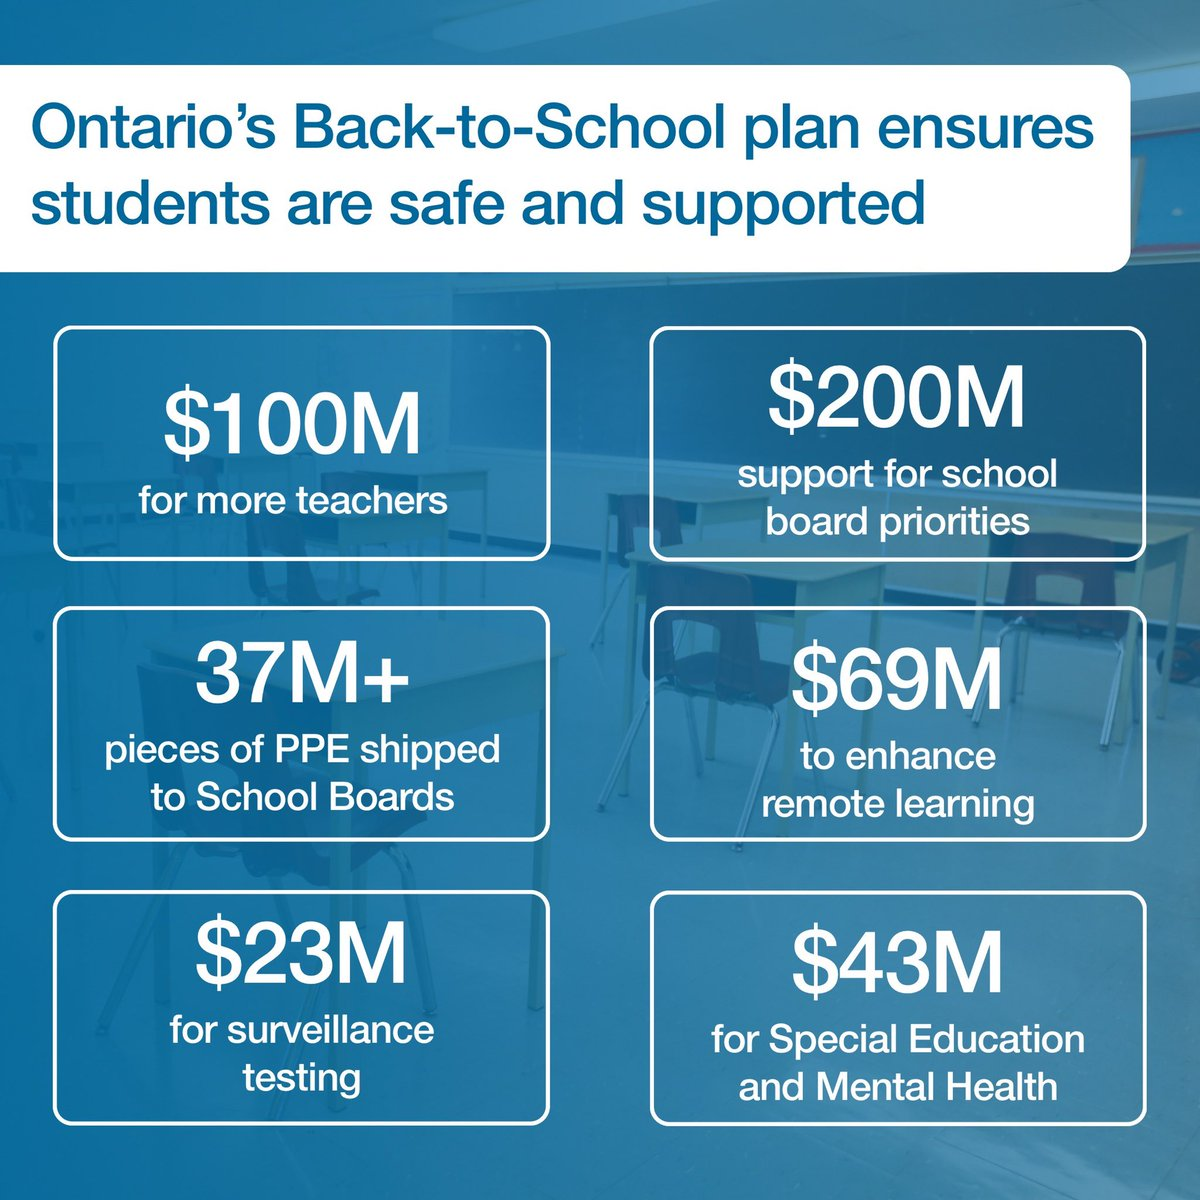 Schools are opening their doors with new supports and health and safety protocols to keep students, families and staff safe. As students reach new heights in the classroom, we will continue to have their back with safety as our top priority. #KeepingKidsSafe